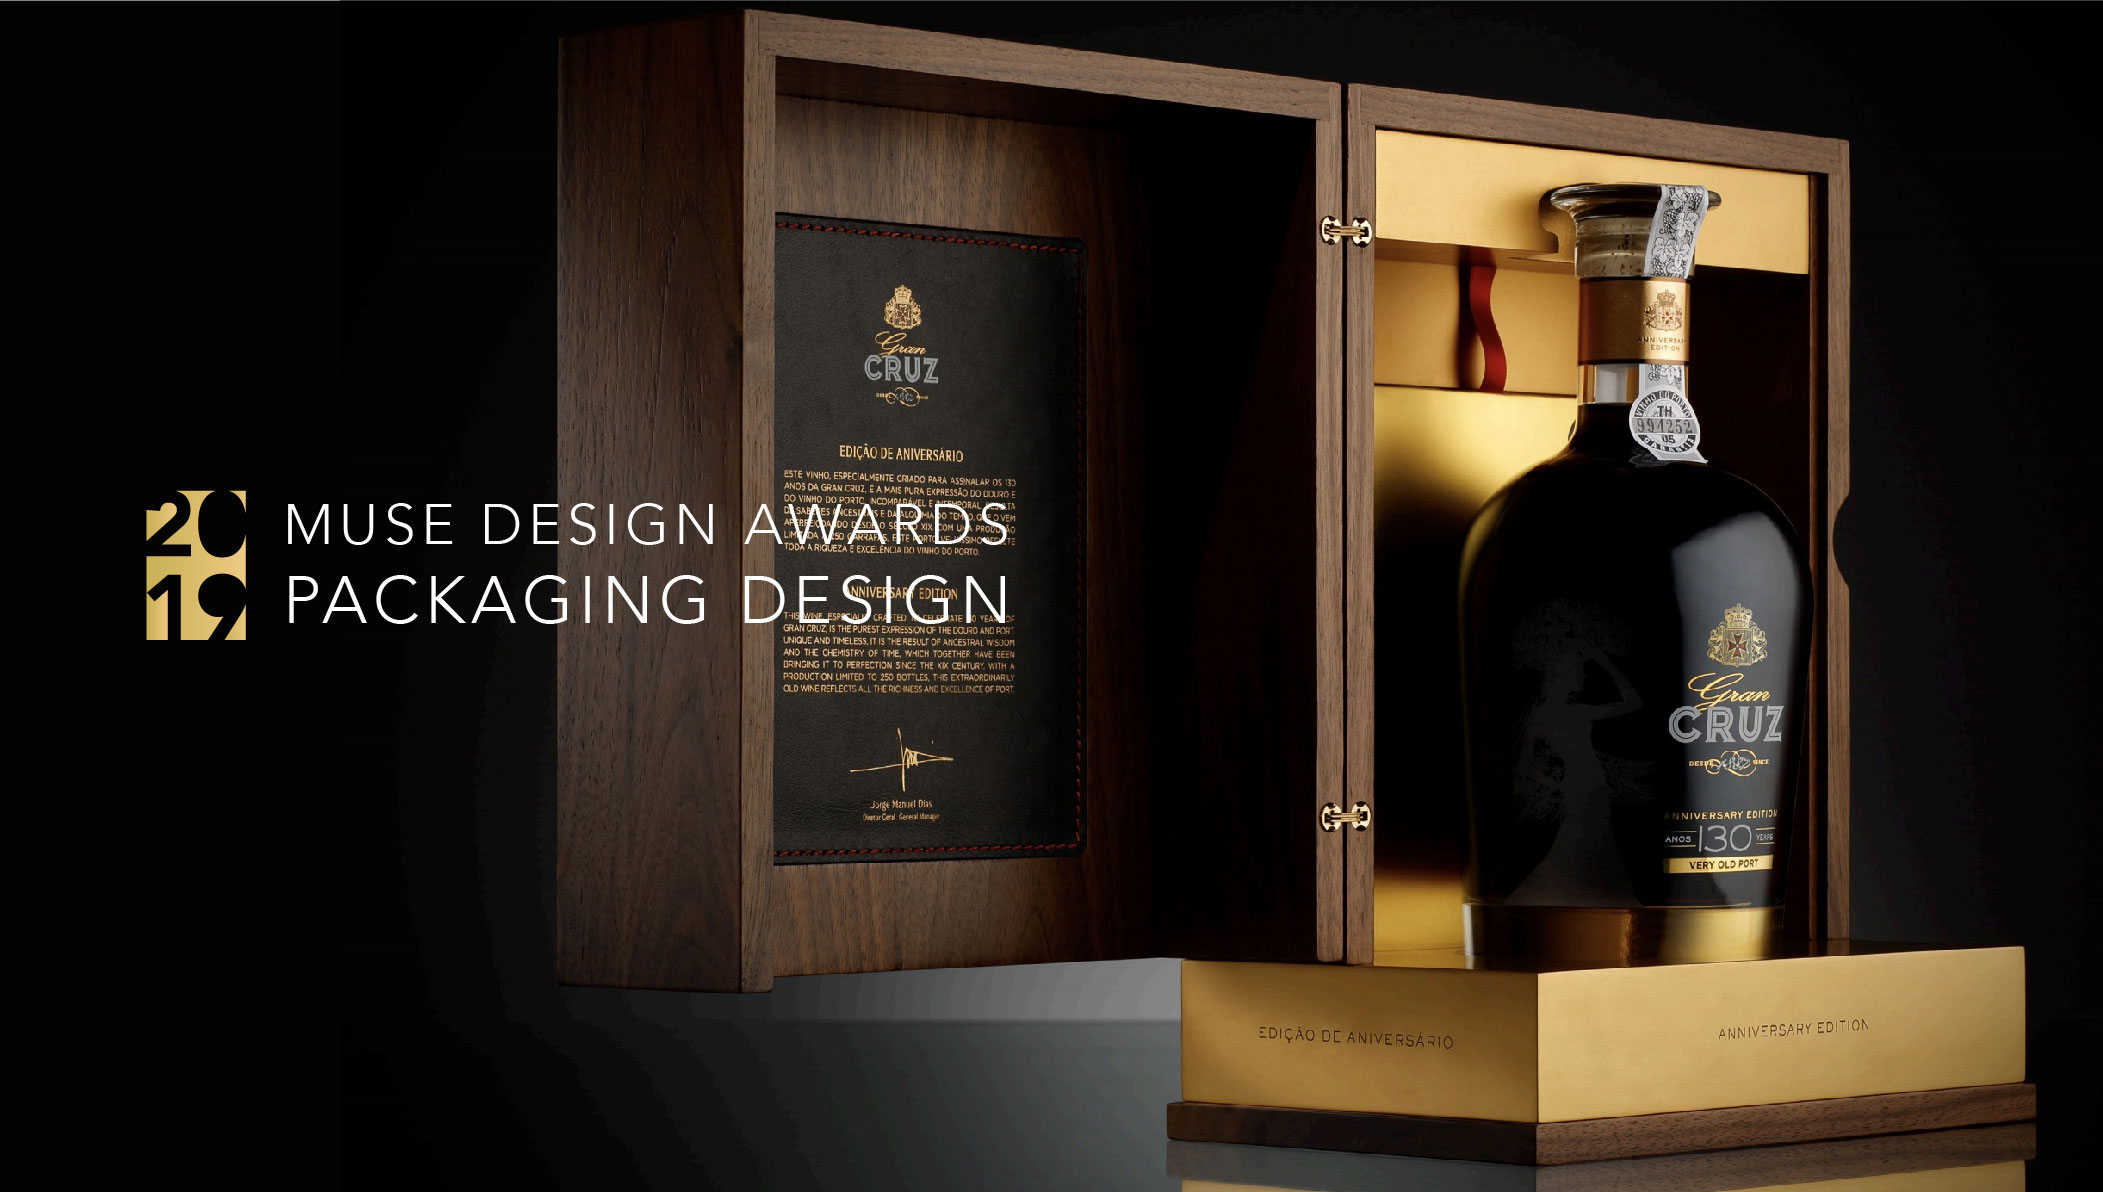 MUSE Packaging Design